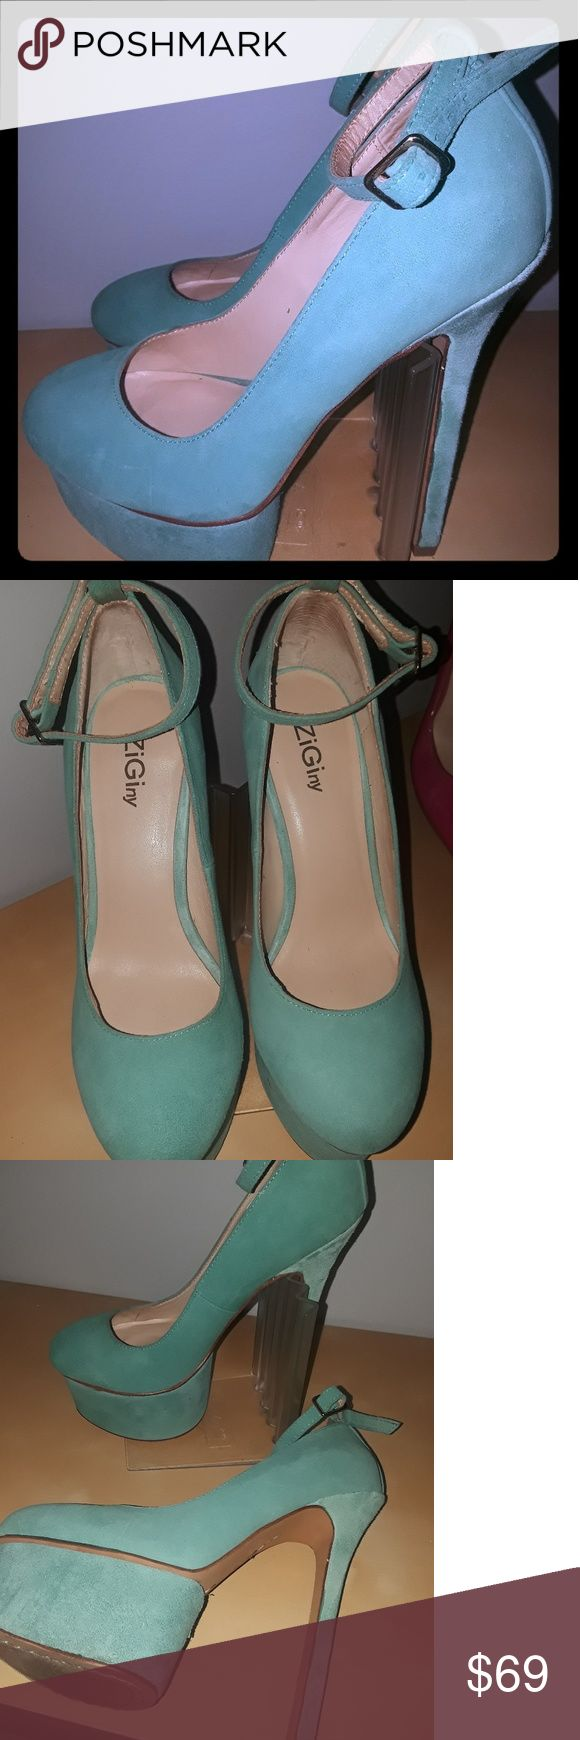 Ziginy Mint Green Heels-Size 6 O.M.G.. Can I say it?? You want some banger heels??? Here they are! I really dont want to let these Charlotte Olympia dupes but I can't do heels anymore .. These shoes are Gorgeous!!!  Genuine leather upper..  Someone please buy them, rock them and let me know how it goes!! You will get a bunch of compliments, I promise...   Heel height is 6 inches so these arent for the faint hearted..   Thanks for looking and happy shopping and please check out my closet for